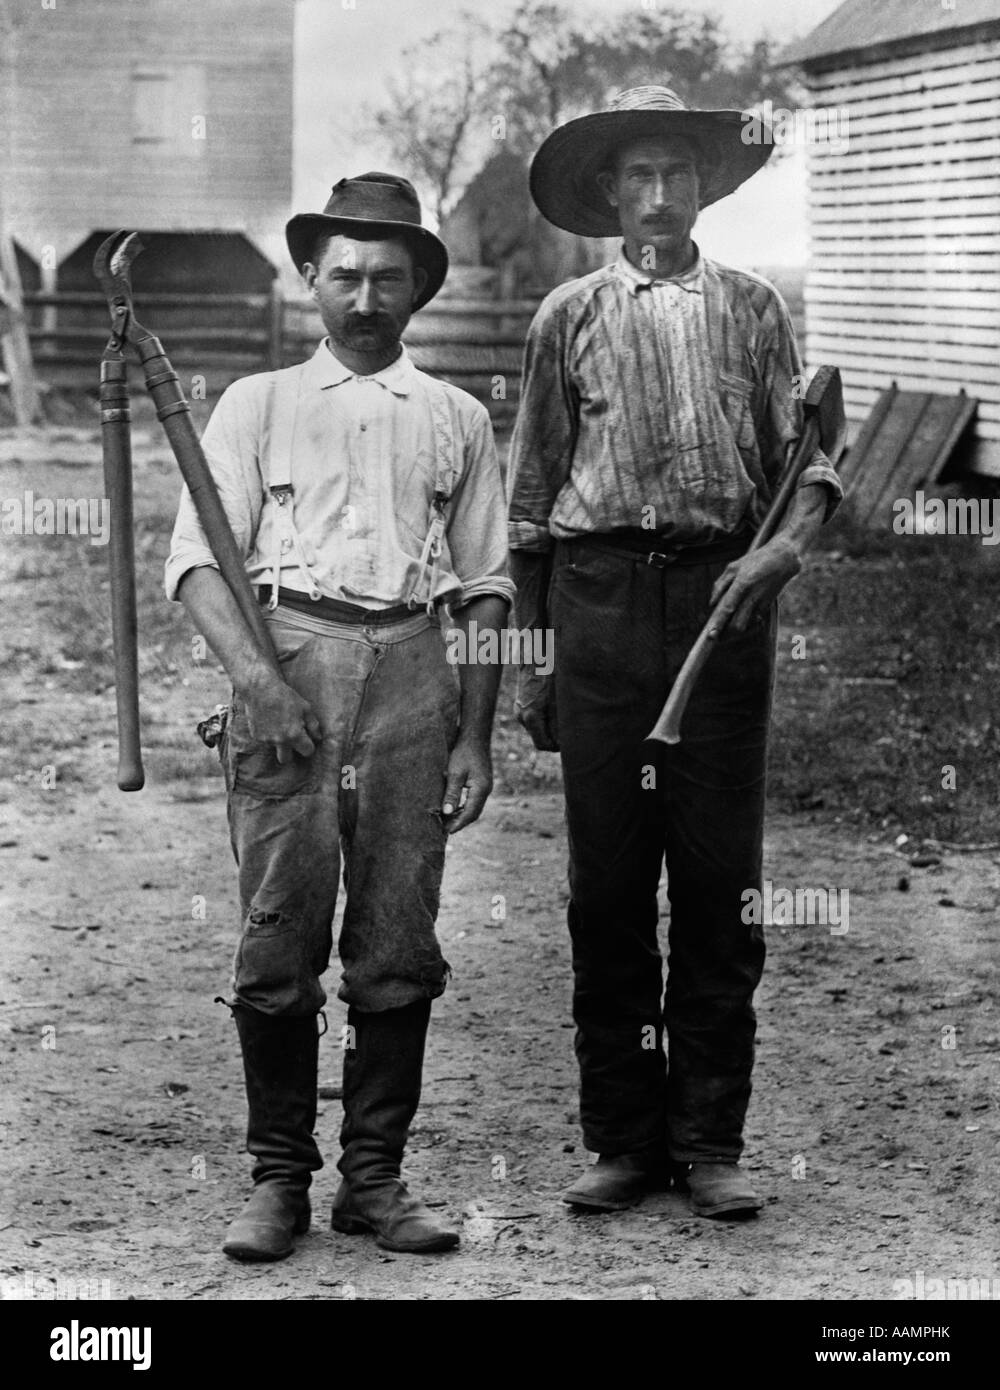 1890s 1900s 2 MEN ON FARM IN WORK CLOTHES ONE HOLDING TREE PRUNER & ONE HOLDING AX - Stock Image